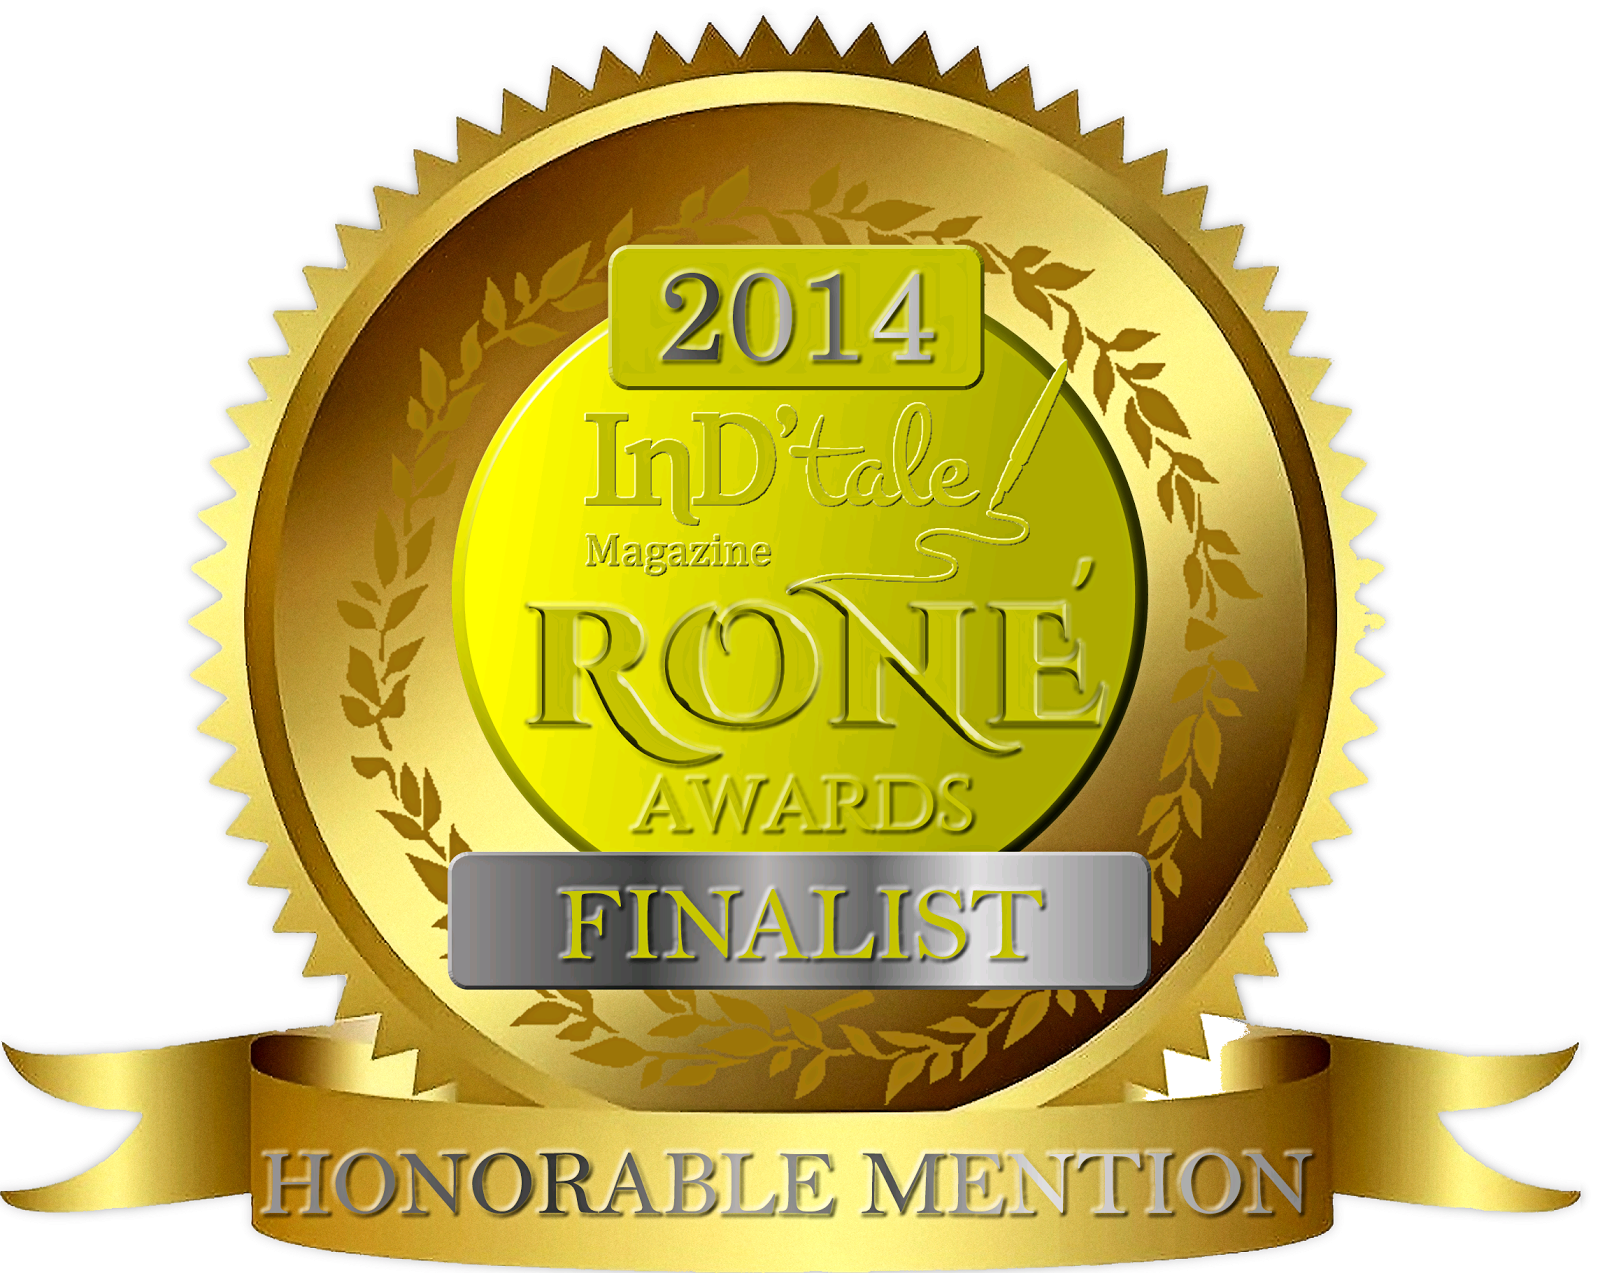 Prophecy's Child won first Honorable Mention in the 2014 R.O.N.E Awards